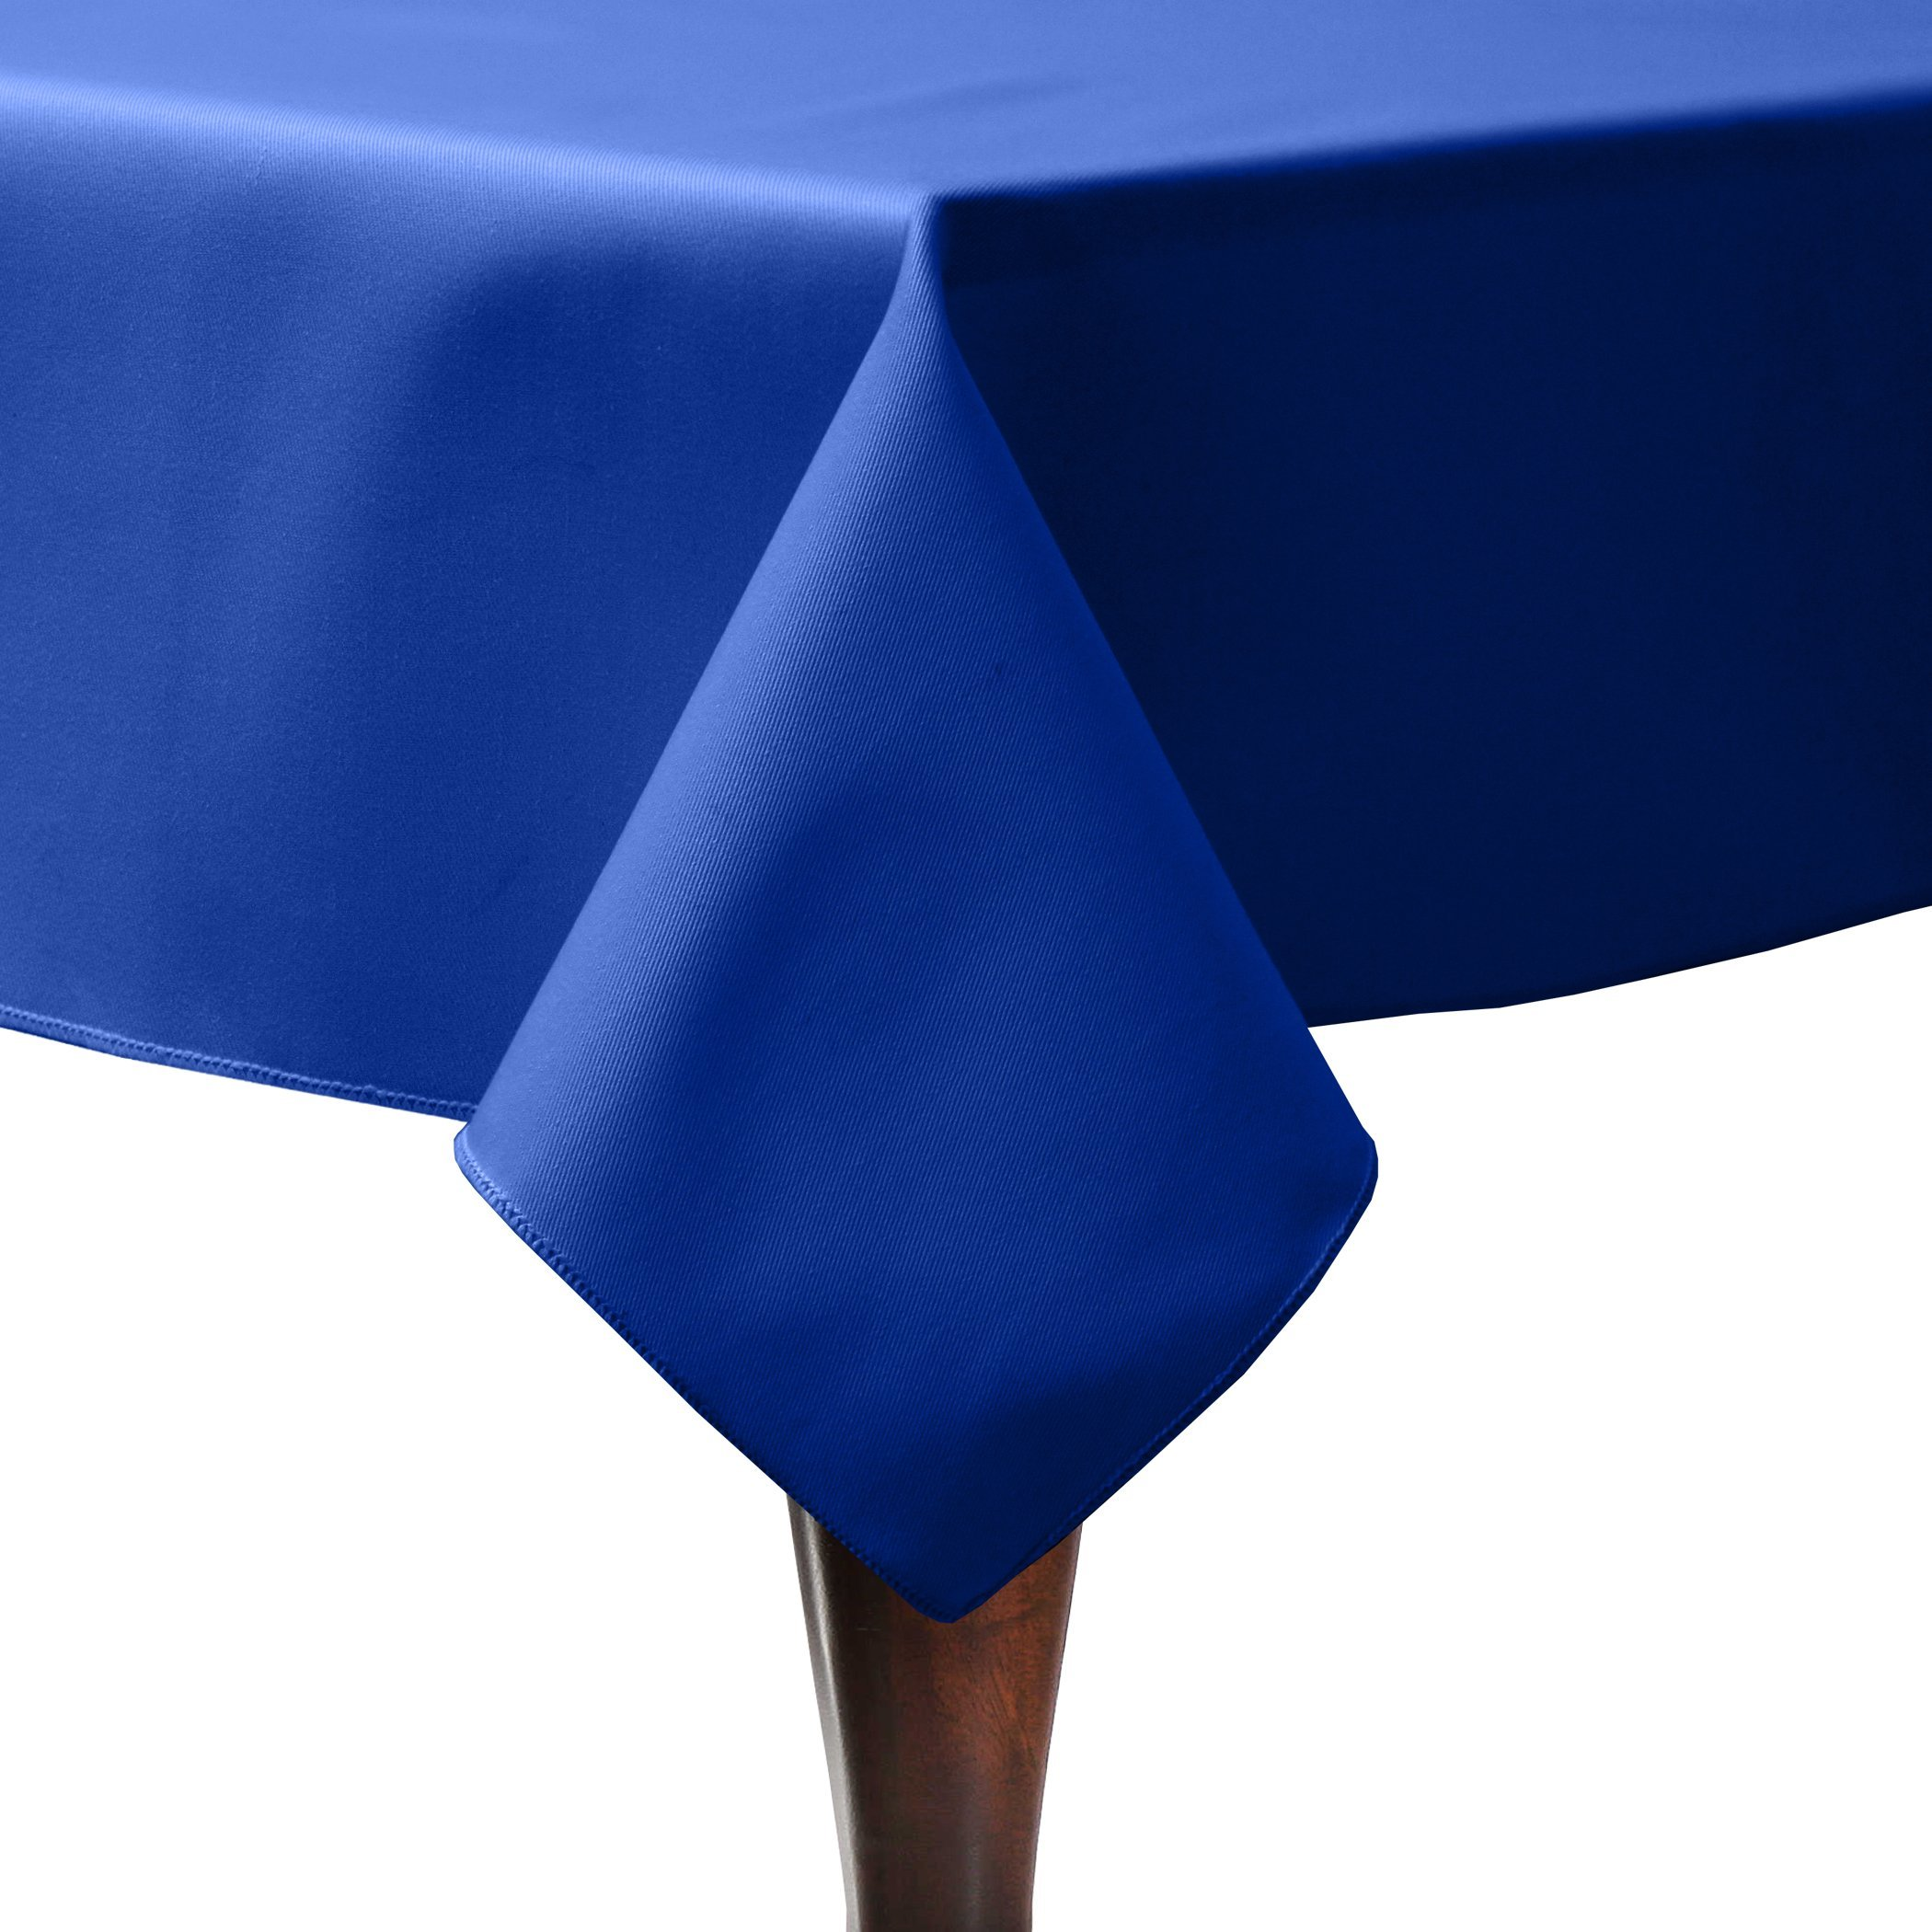 Ultimate Textile (10 Pack) Poly-cotton Twill 60 x 108-Inch Rectangular Tablecloth - for Restaurant and Catering, Hotel or Home Dining use, Royal Blue